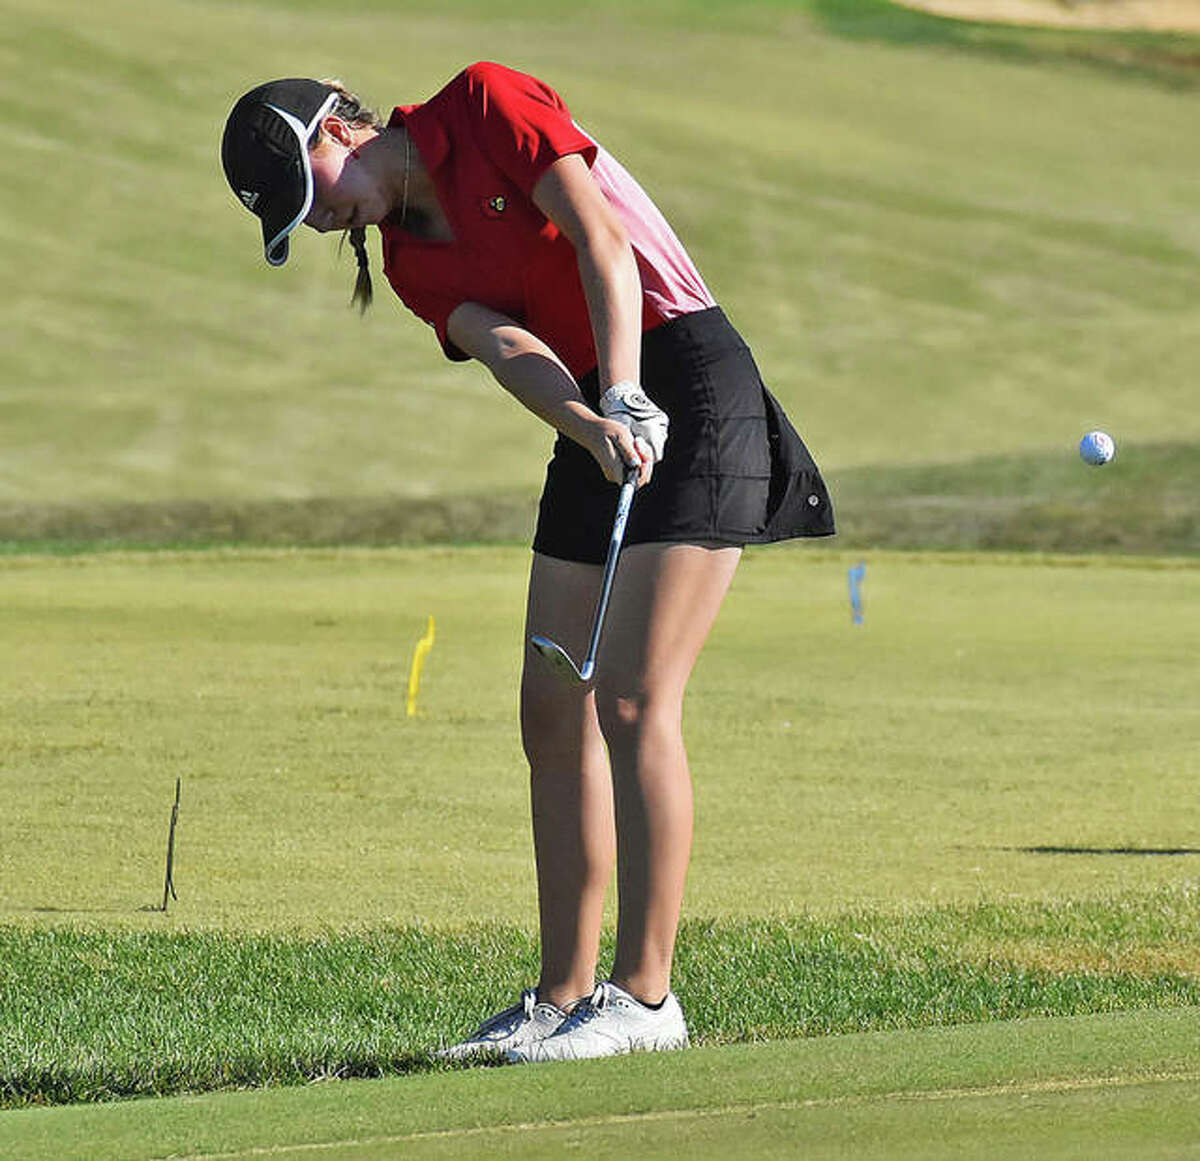 Alton's Natalie Messinger hits a shot on the first hole at Kokopelli Golf Club on Wednesday at the Marion Class 2A Regional. Messinger shot 80 to advance to the sectional.